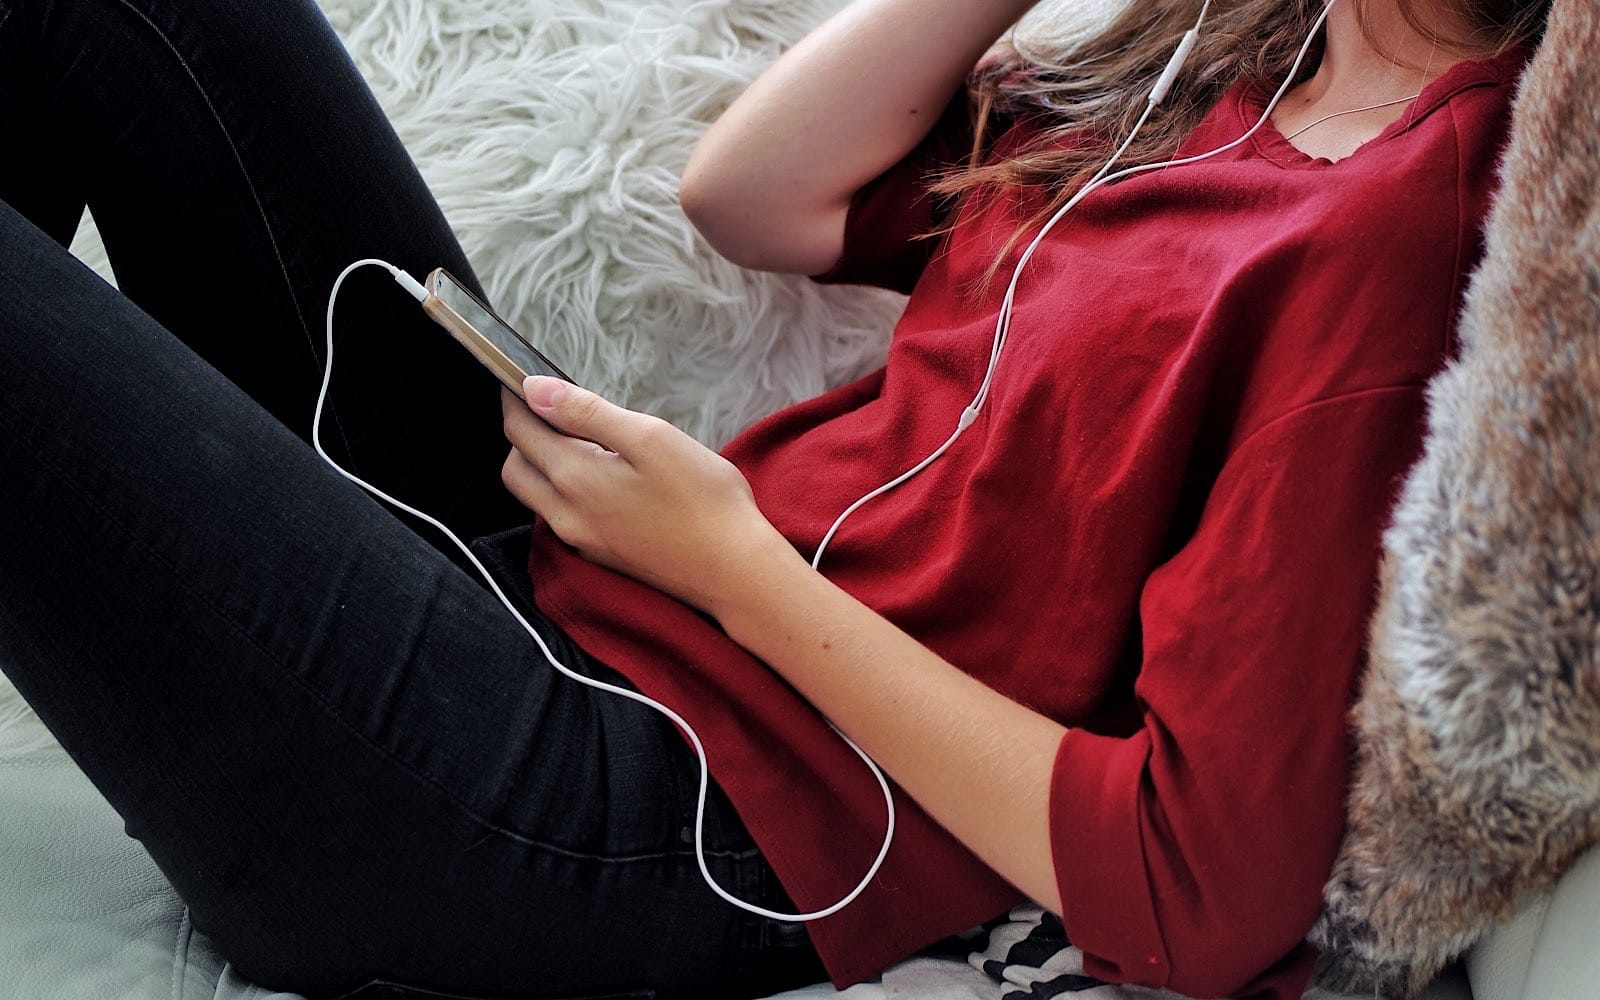 Listening to music on a phone